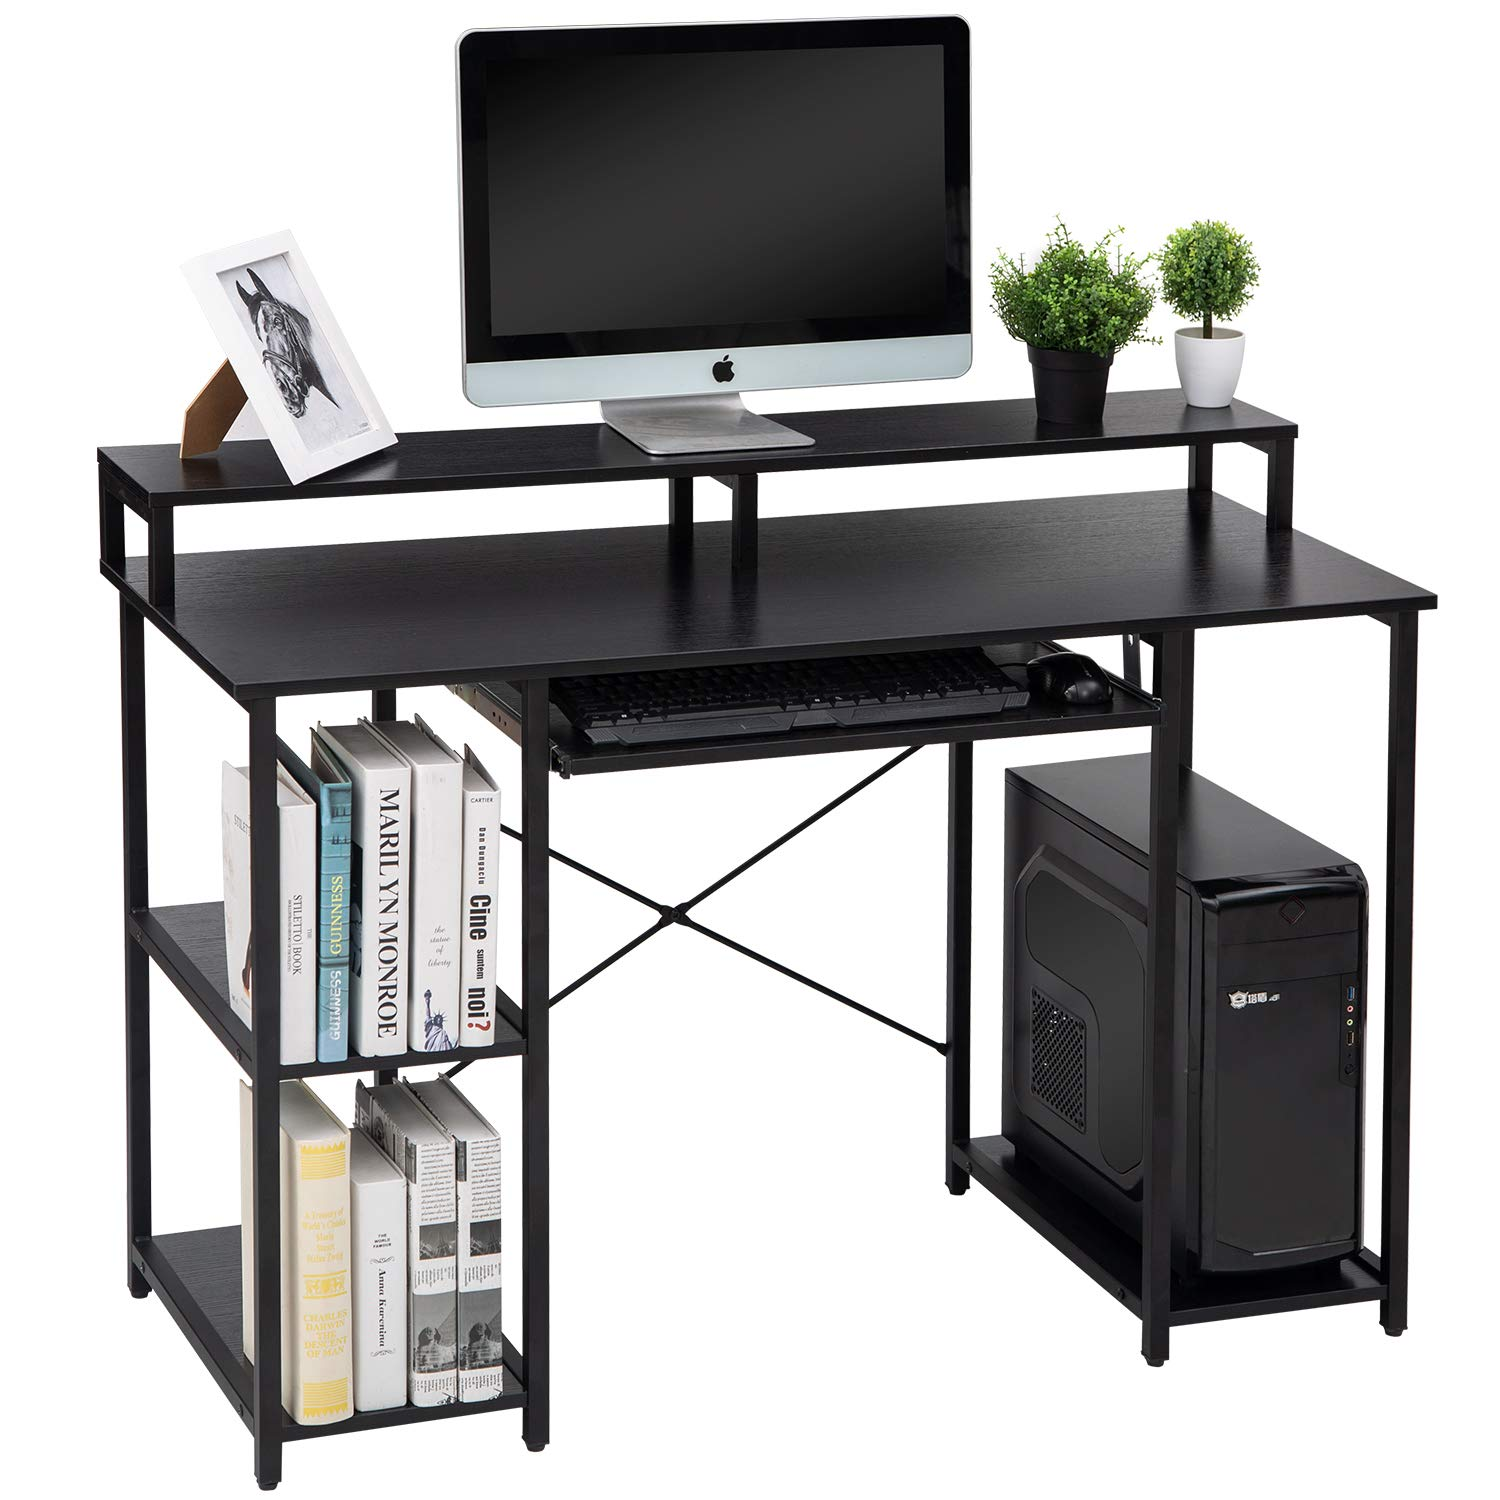 TOPSKY Computer Desk with Storage Shelves//Keyboard Tray//Monitor Stand Study Table for Home Office /… Black